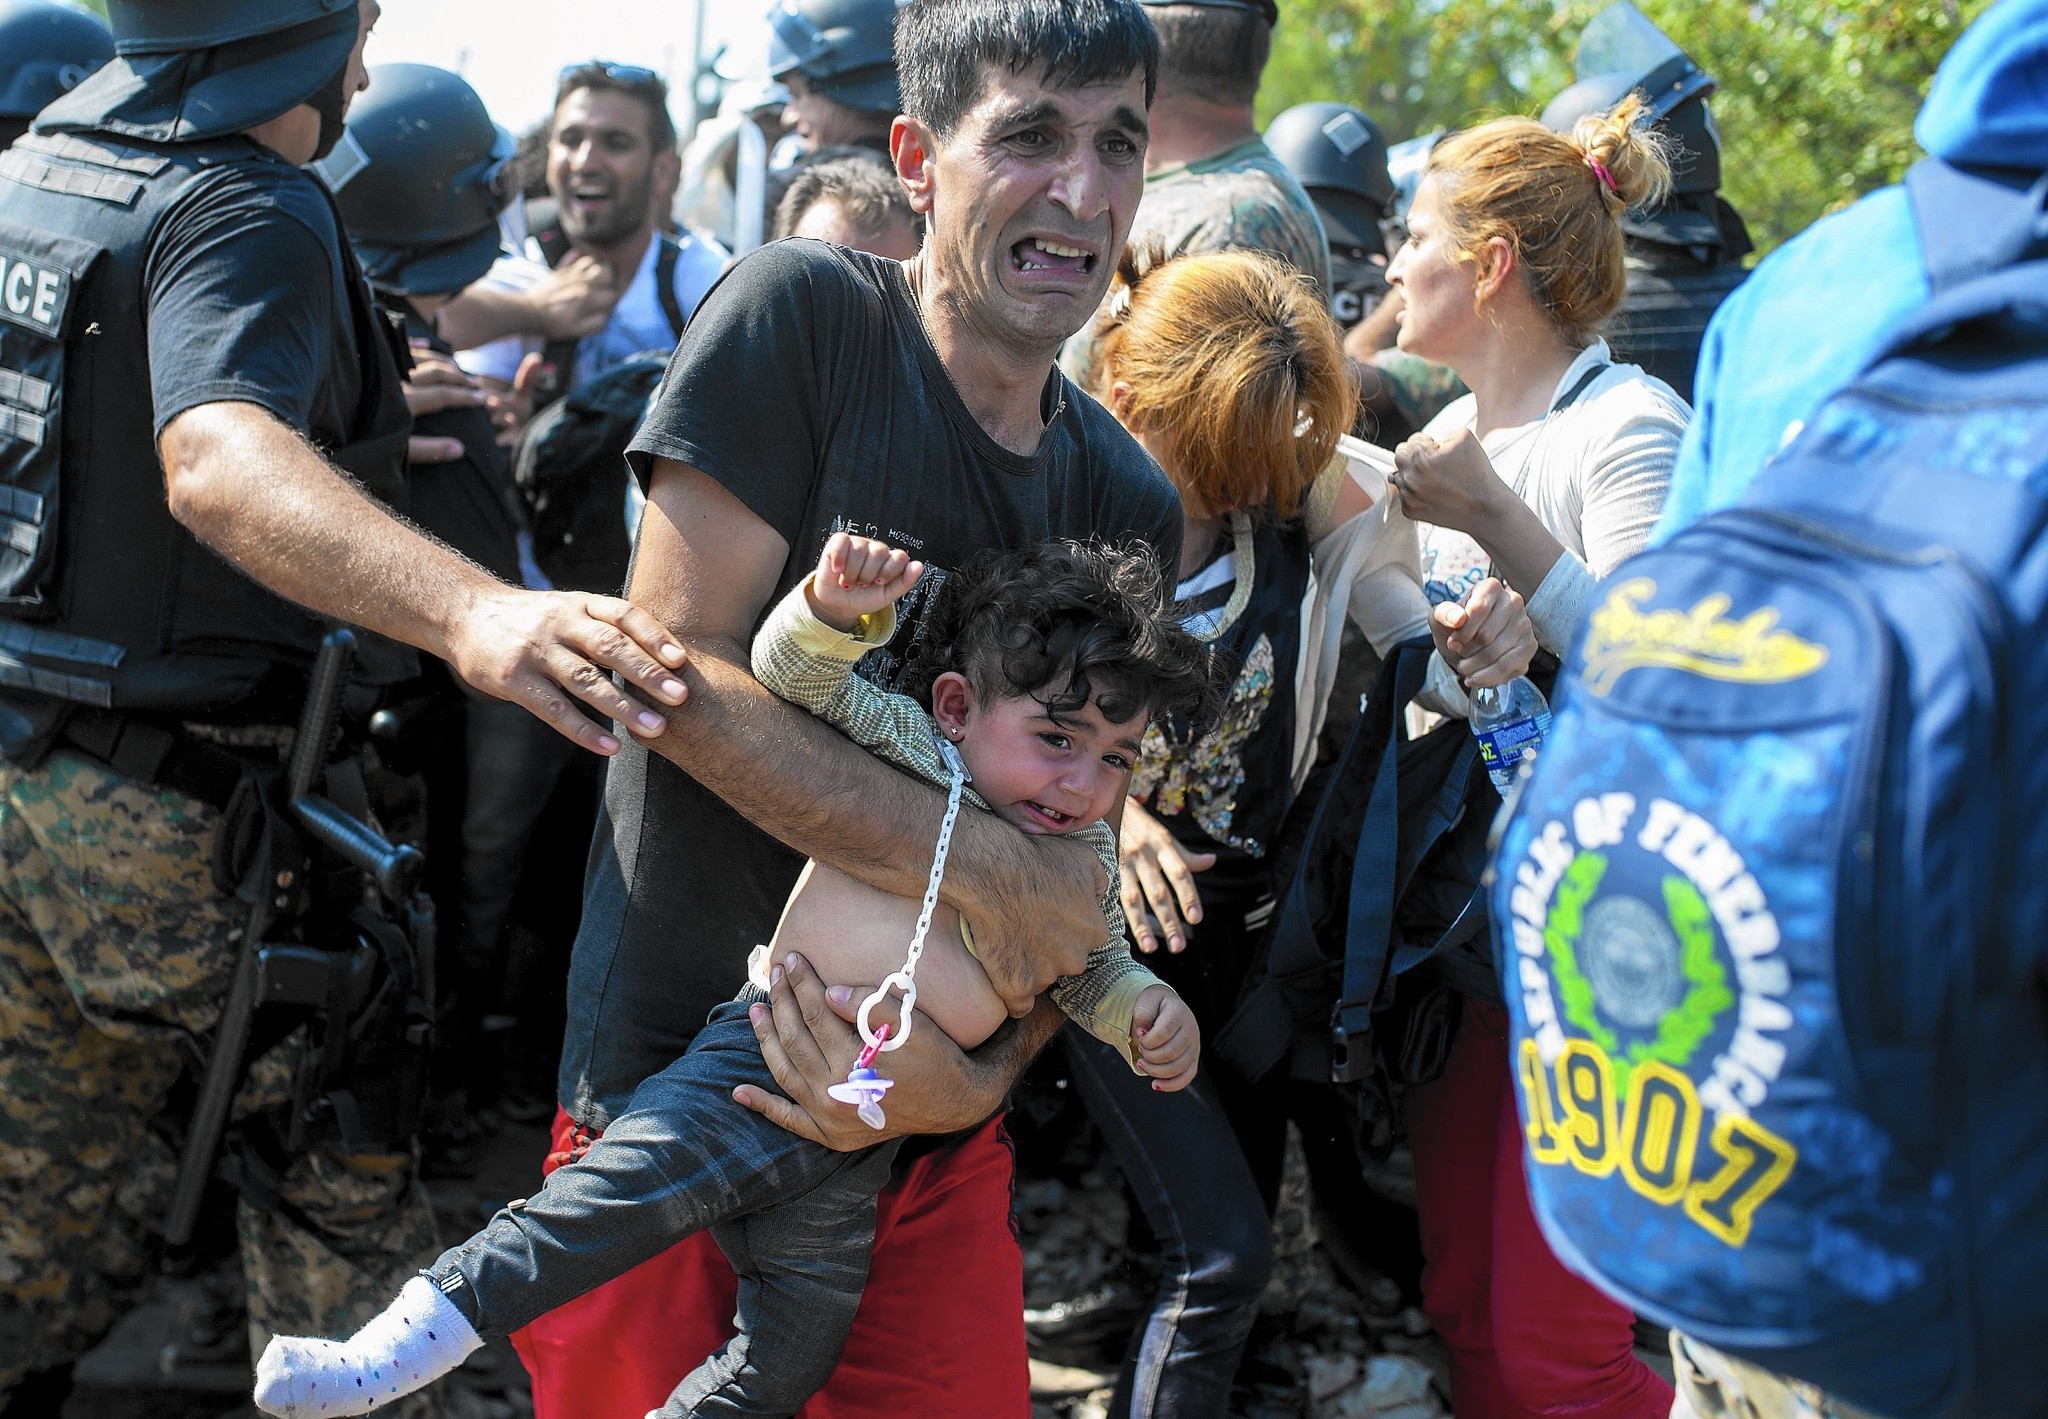 Macedonia border camp helps send migrants on their way